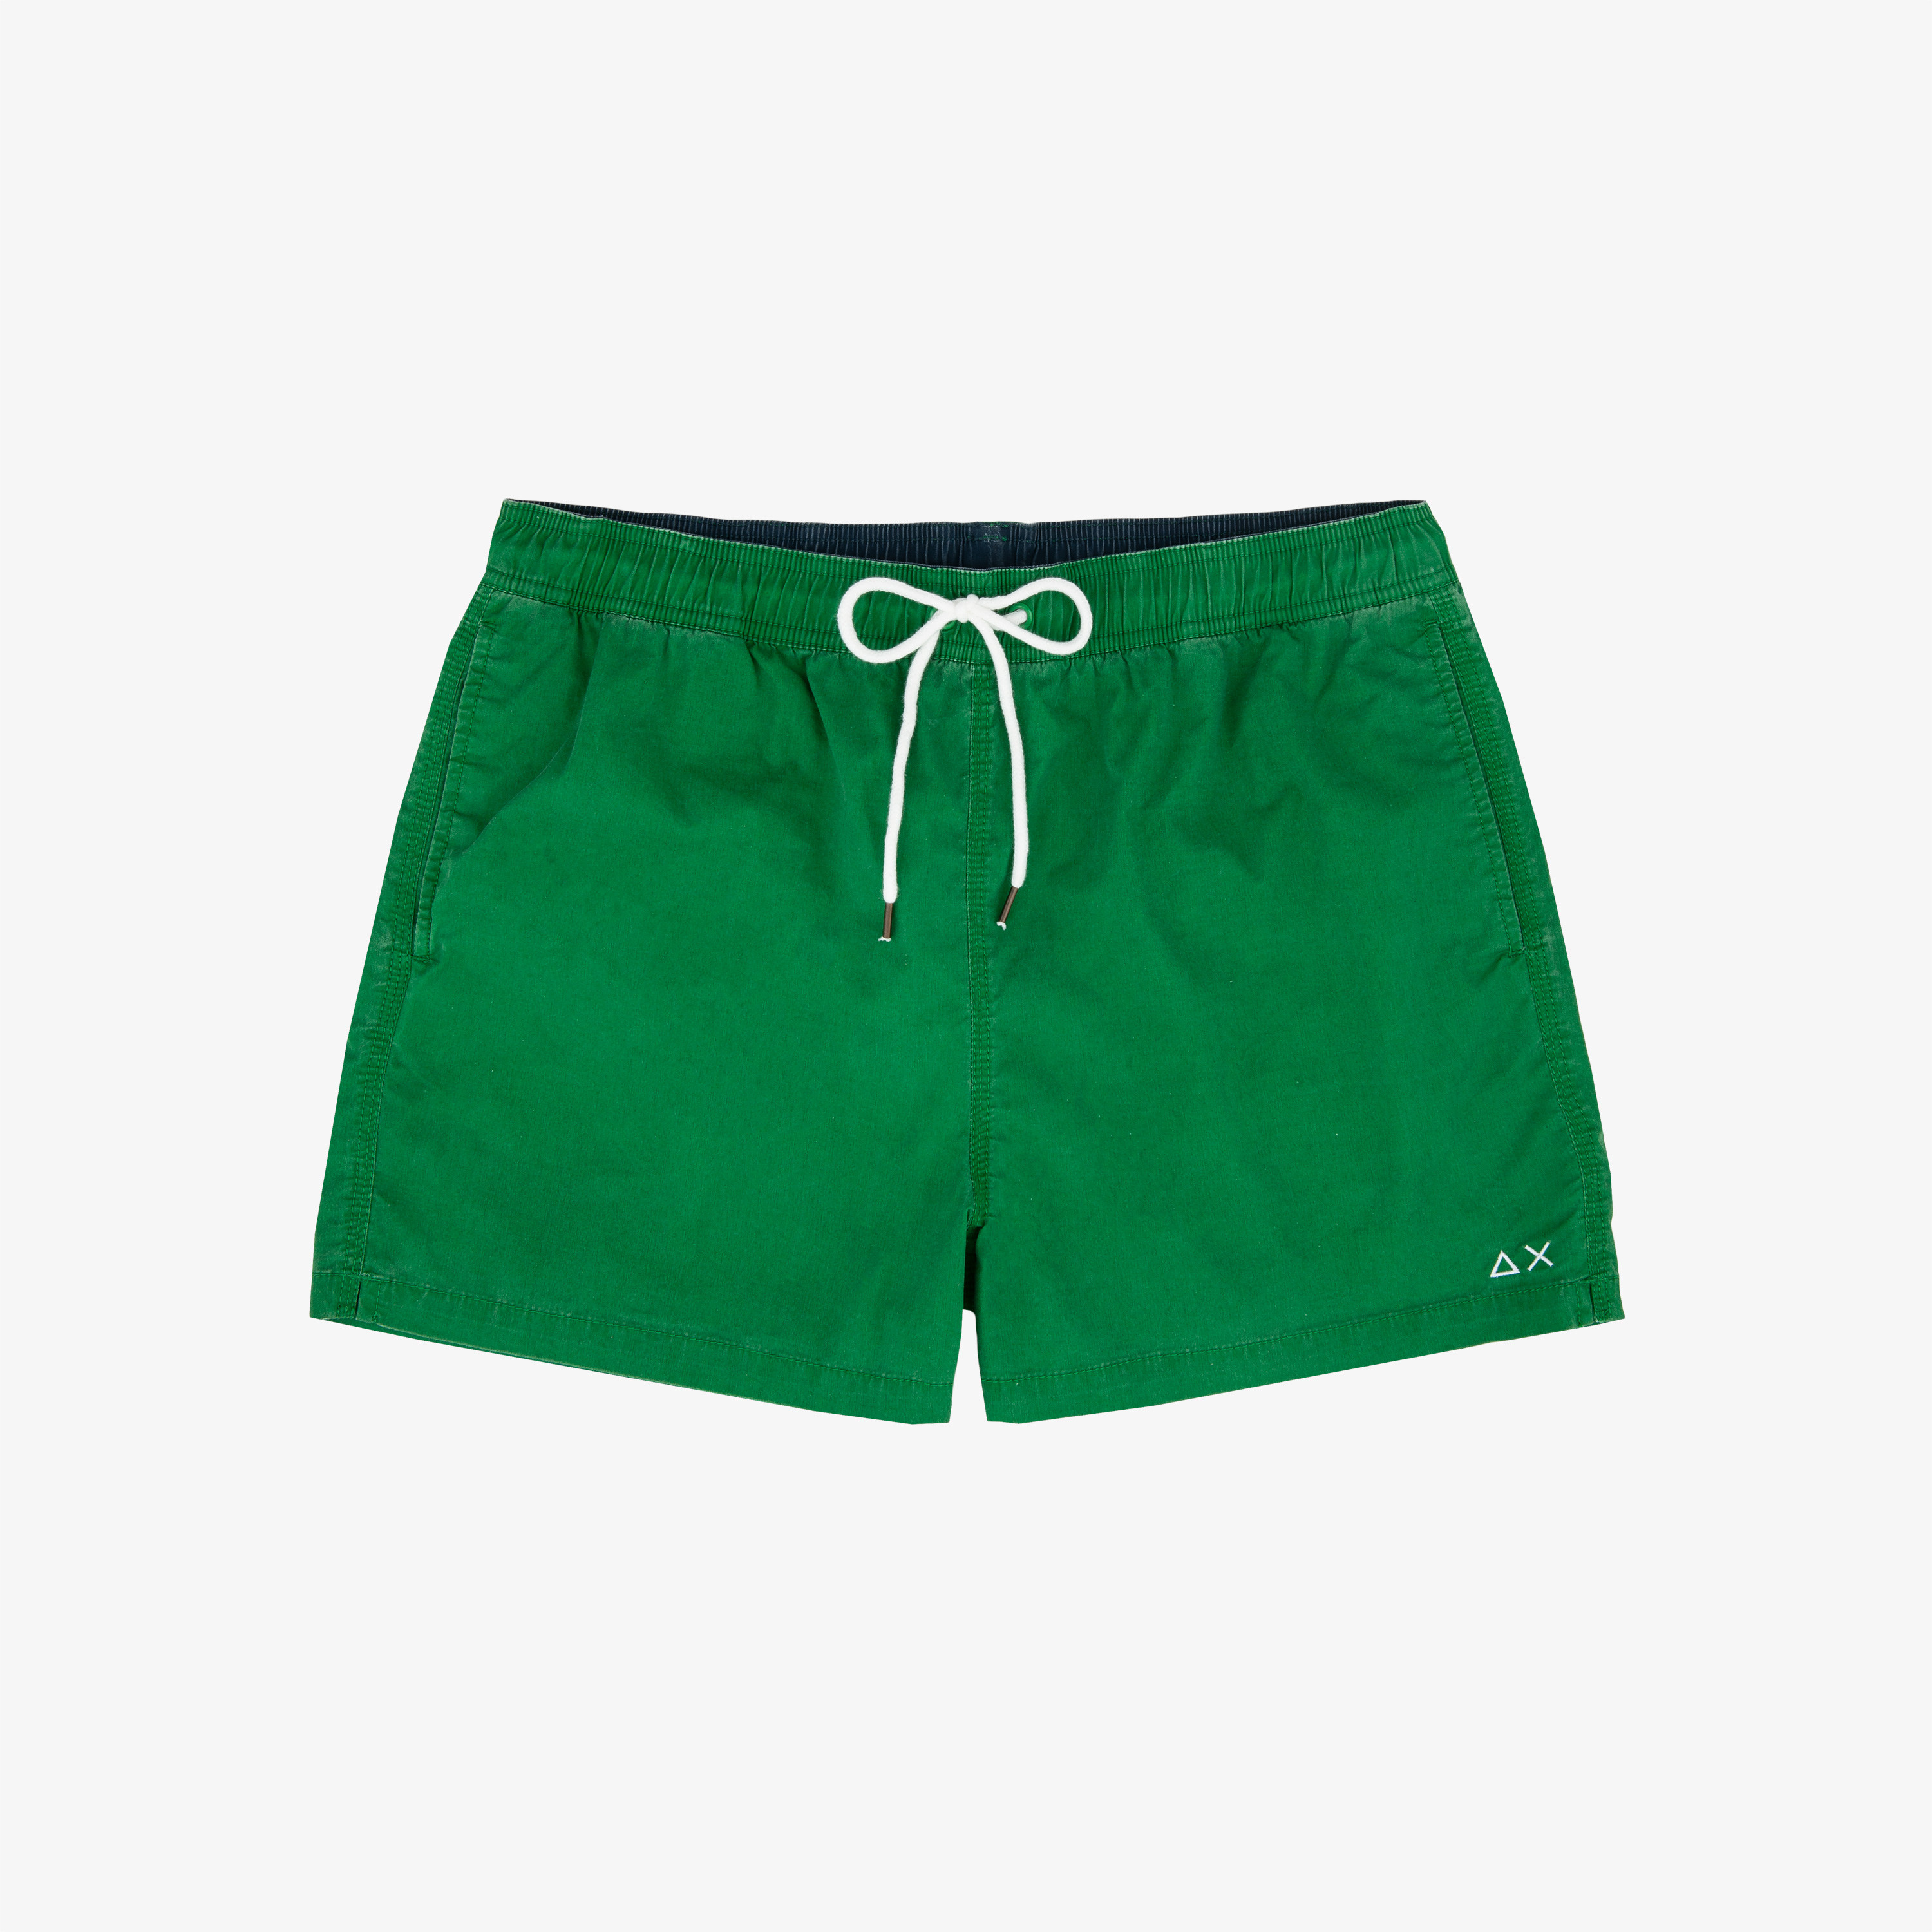 SWIM PANT CLASSIC SOLID GARDEN GREEN